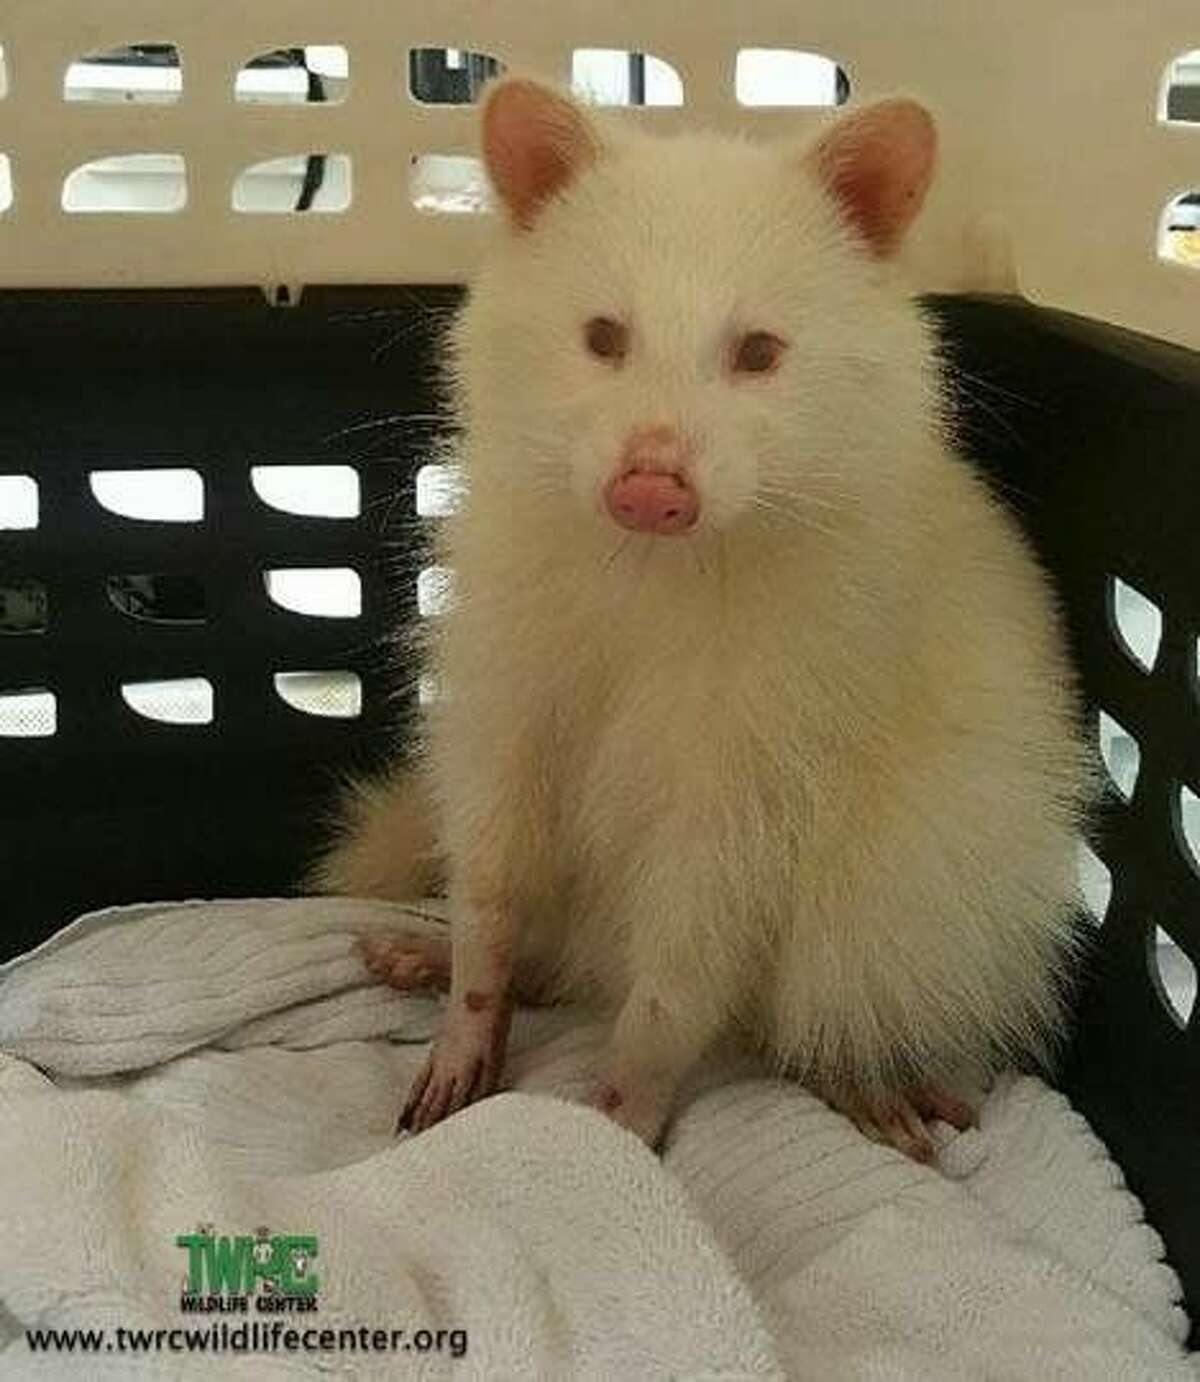 Texas Wildlife Rehabilitation Coalition Wildlife Center received a rare albino raccoon in December. The animal is so rare, the chances of spotting one in the wild are less than those of being struck by lightning. It's now in the care of Friends of Texas Wildlife.